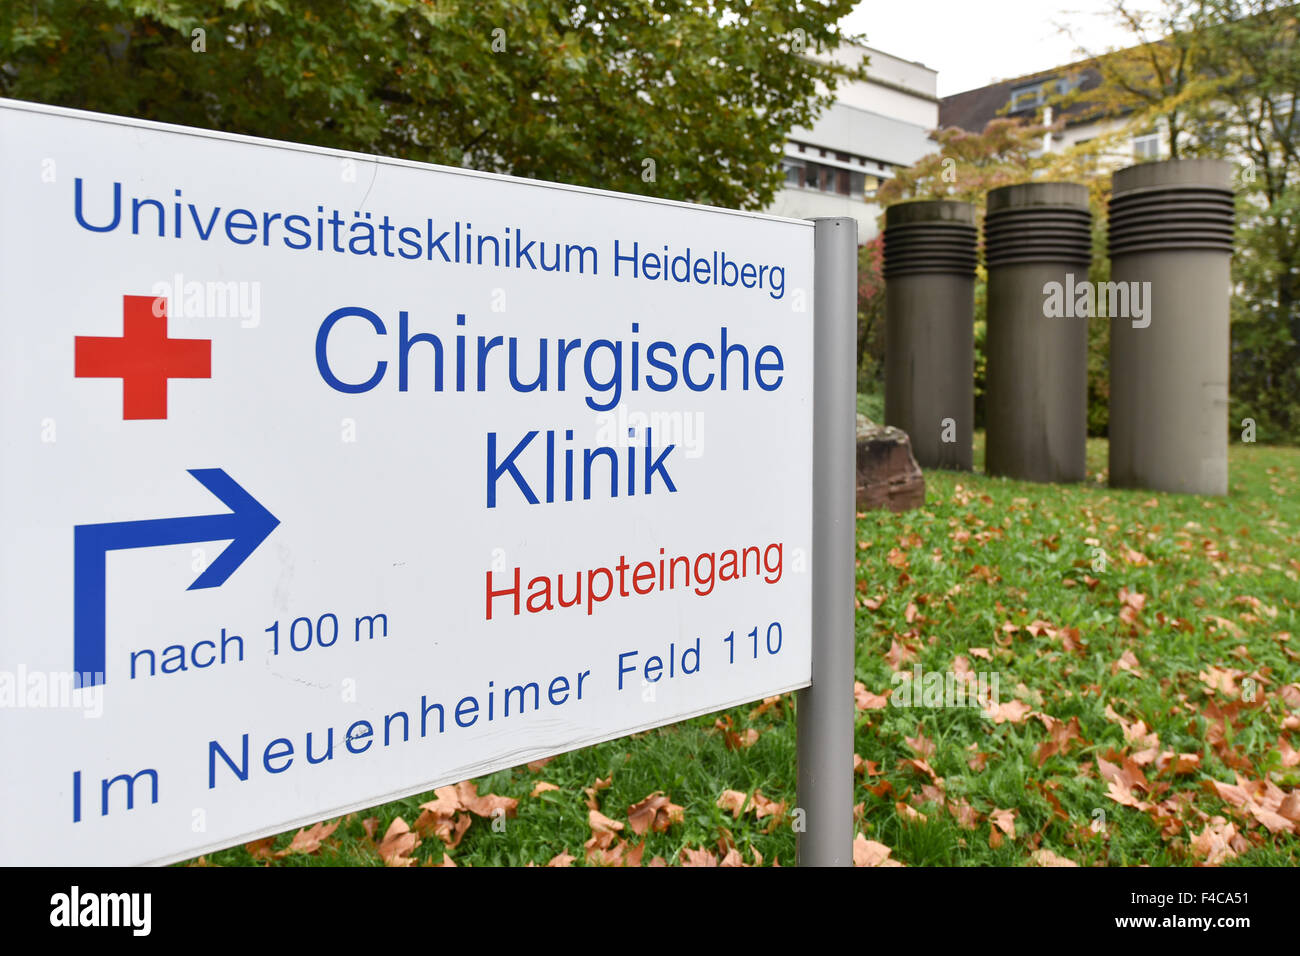 Heidelberg, Germany. 16th Oct, 2015. A sign points to the Chirurgische Klinik (lit. surgical clinic) at the Universitaetsklinikum - Stock Image